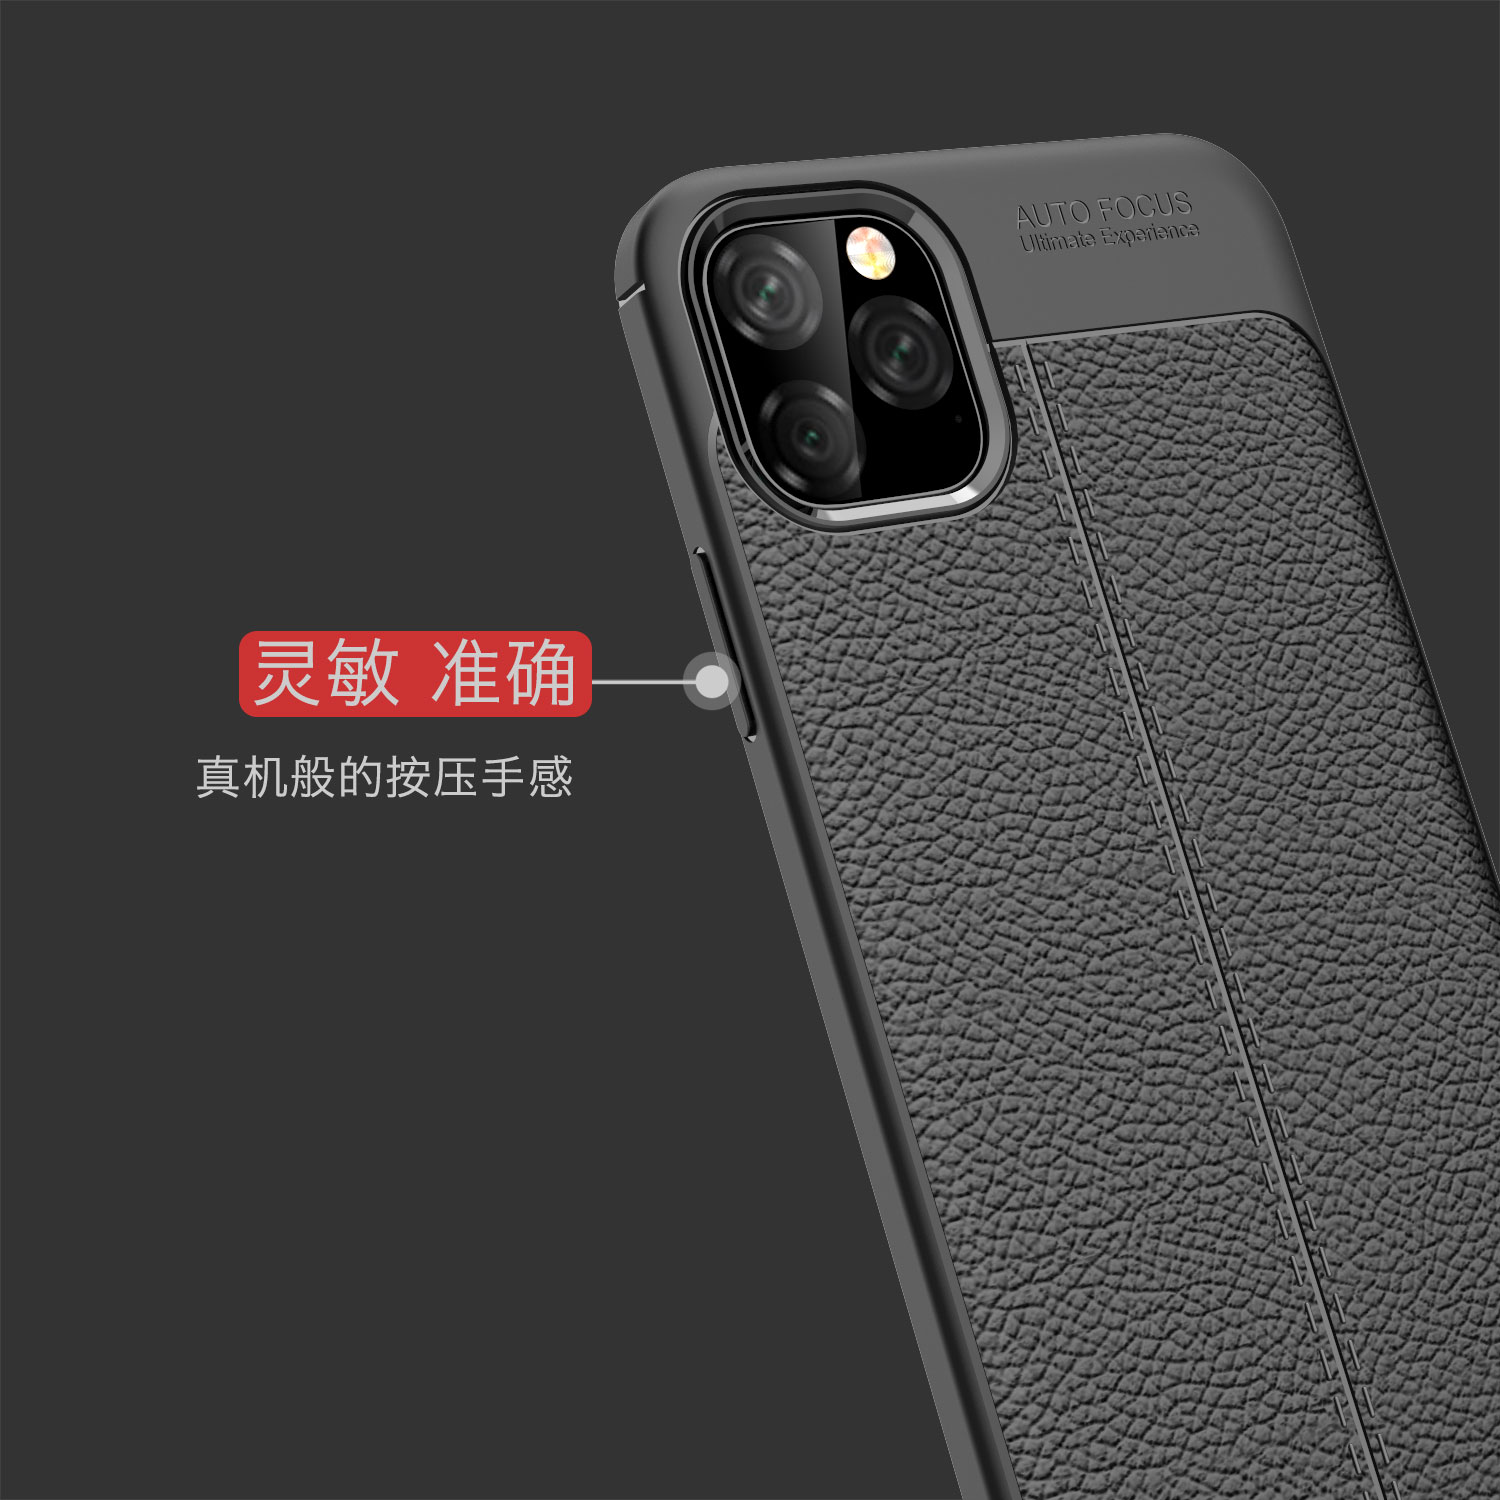 H55b4fc4b3f364abdb47a3ee8d2b22916r For iPhone 11 Pro Max Case 7 8 5S 6S Plus XR XS SE Apple Case Luxury Leather PU Soft Silicone Phone Back Cover For iPhone 11 Pro